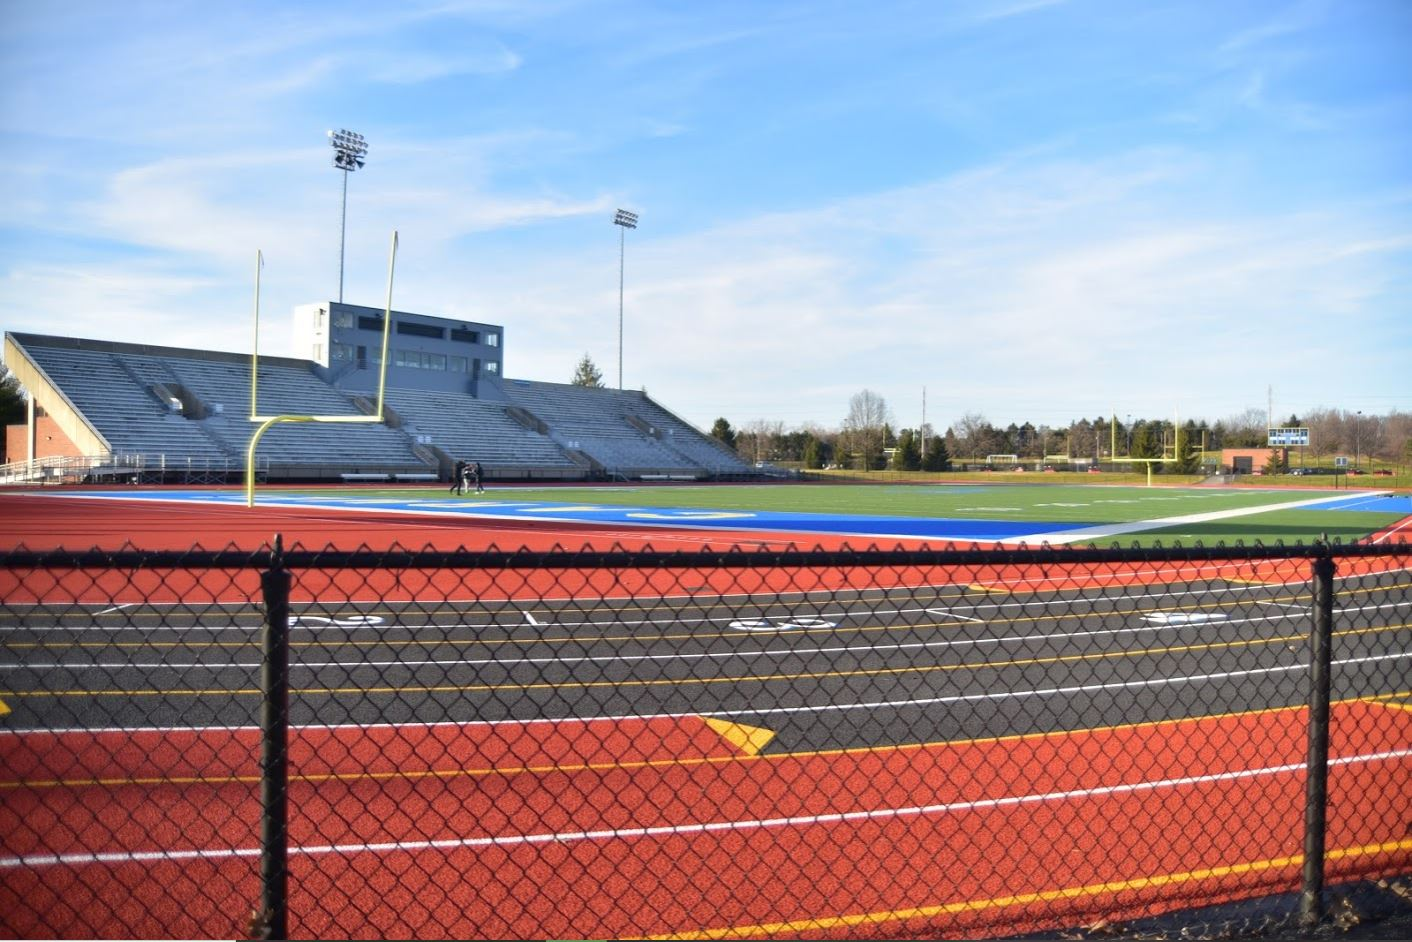 Construction will occur at the football field in 2023. According to Athletics Director Jim Inskeep, the administration has already discussed ideas for the construction.